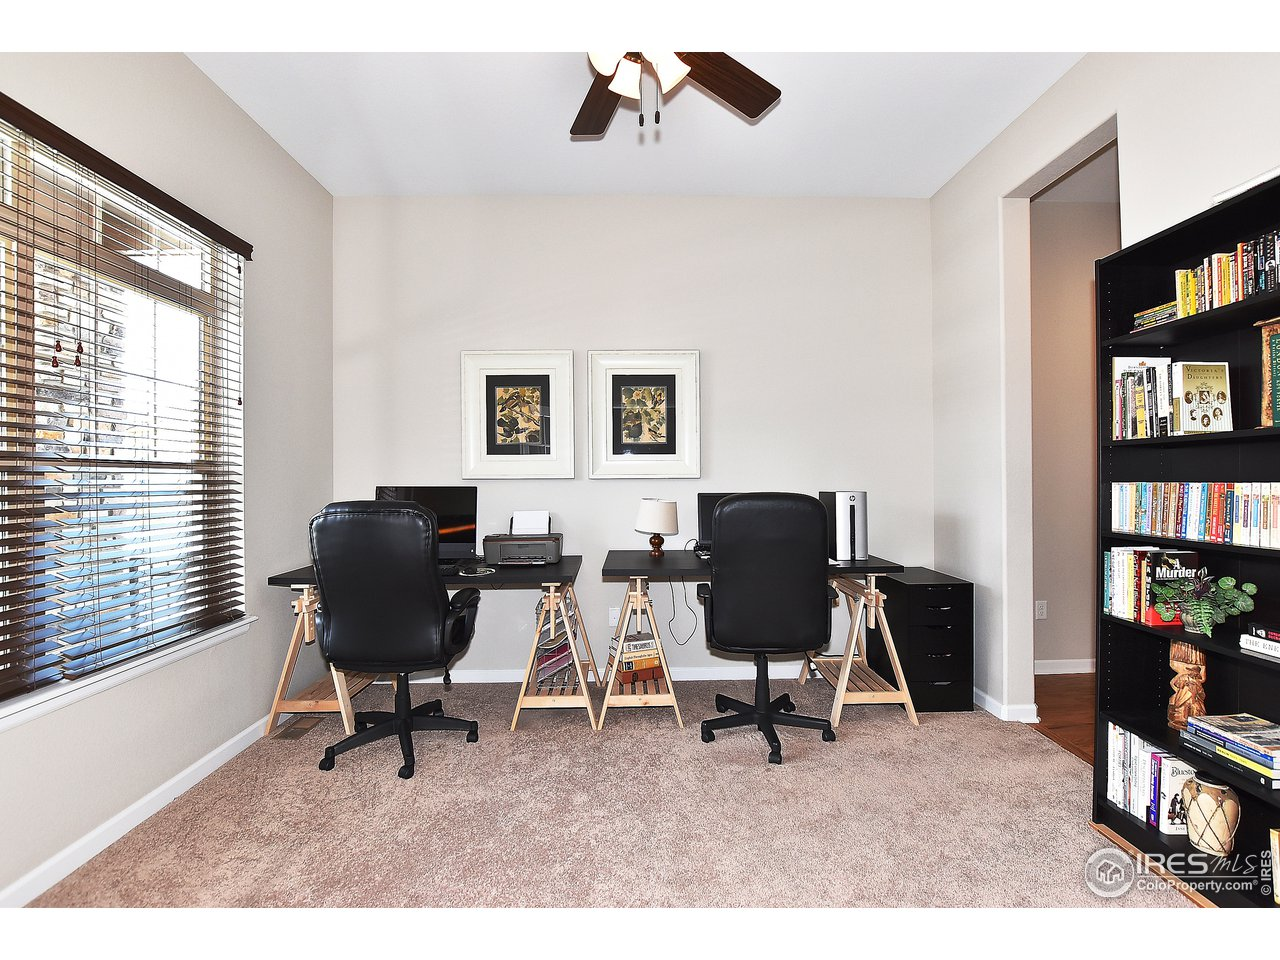 Office or formal dining room. You choose!